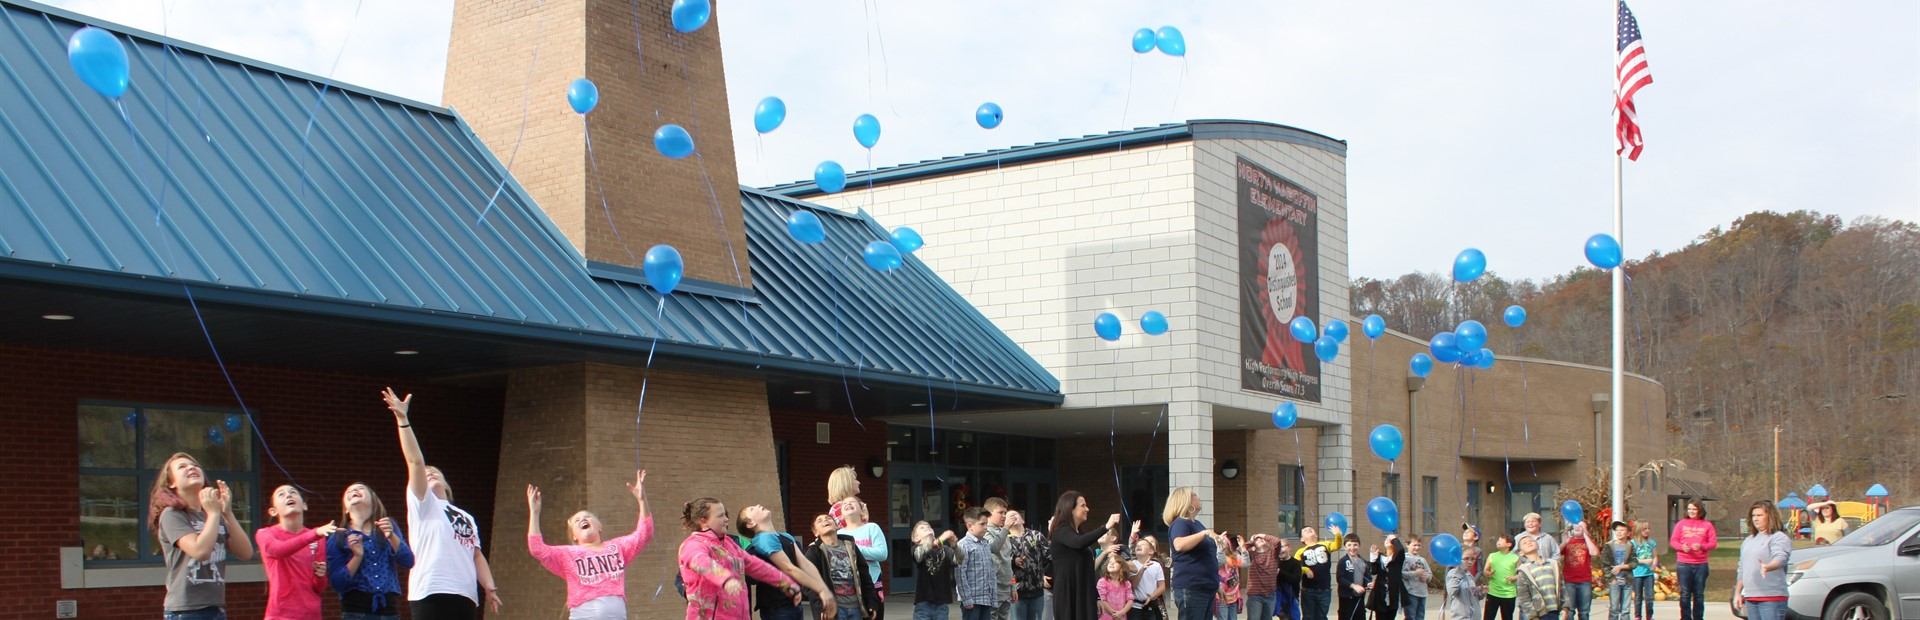 Students at North Magoffin Elementary recognized World Diabetes Awareness Day on November 14th by releasing blue balloons to honor all students battling diabetes.